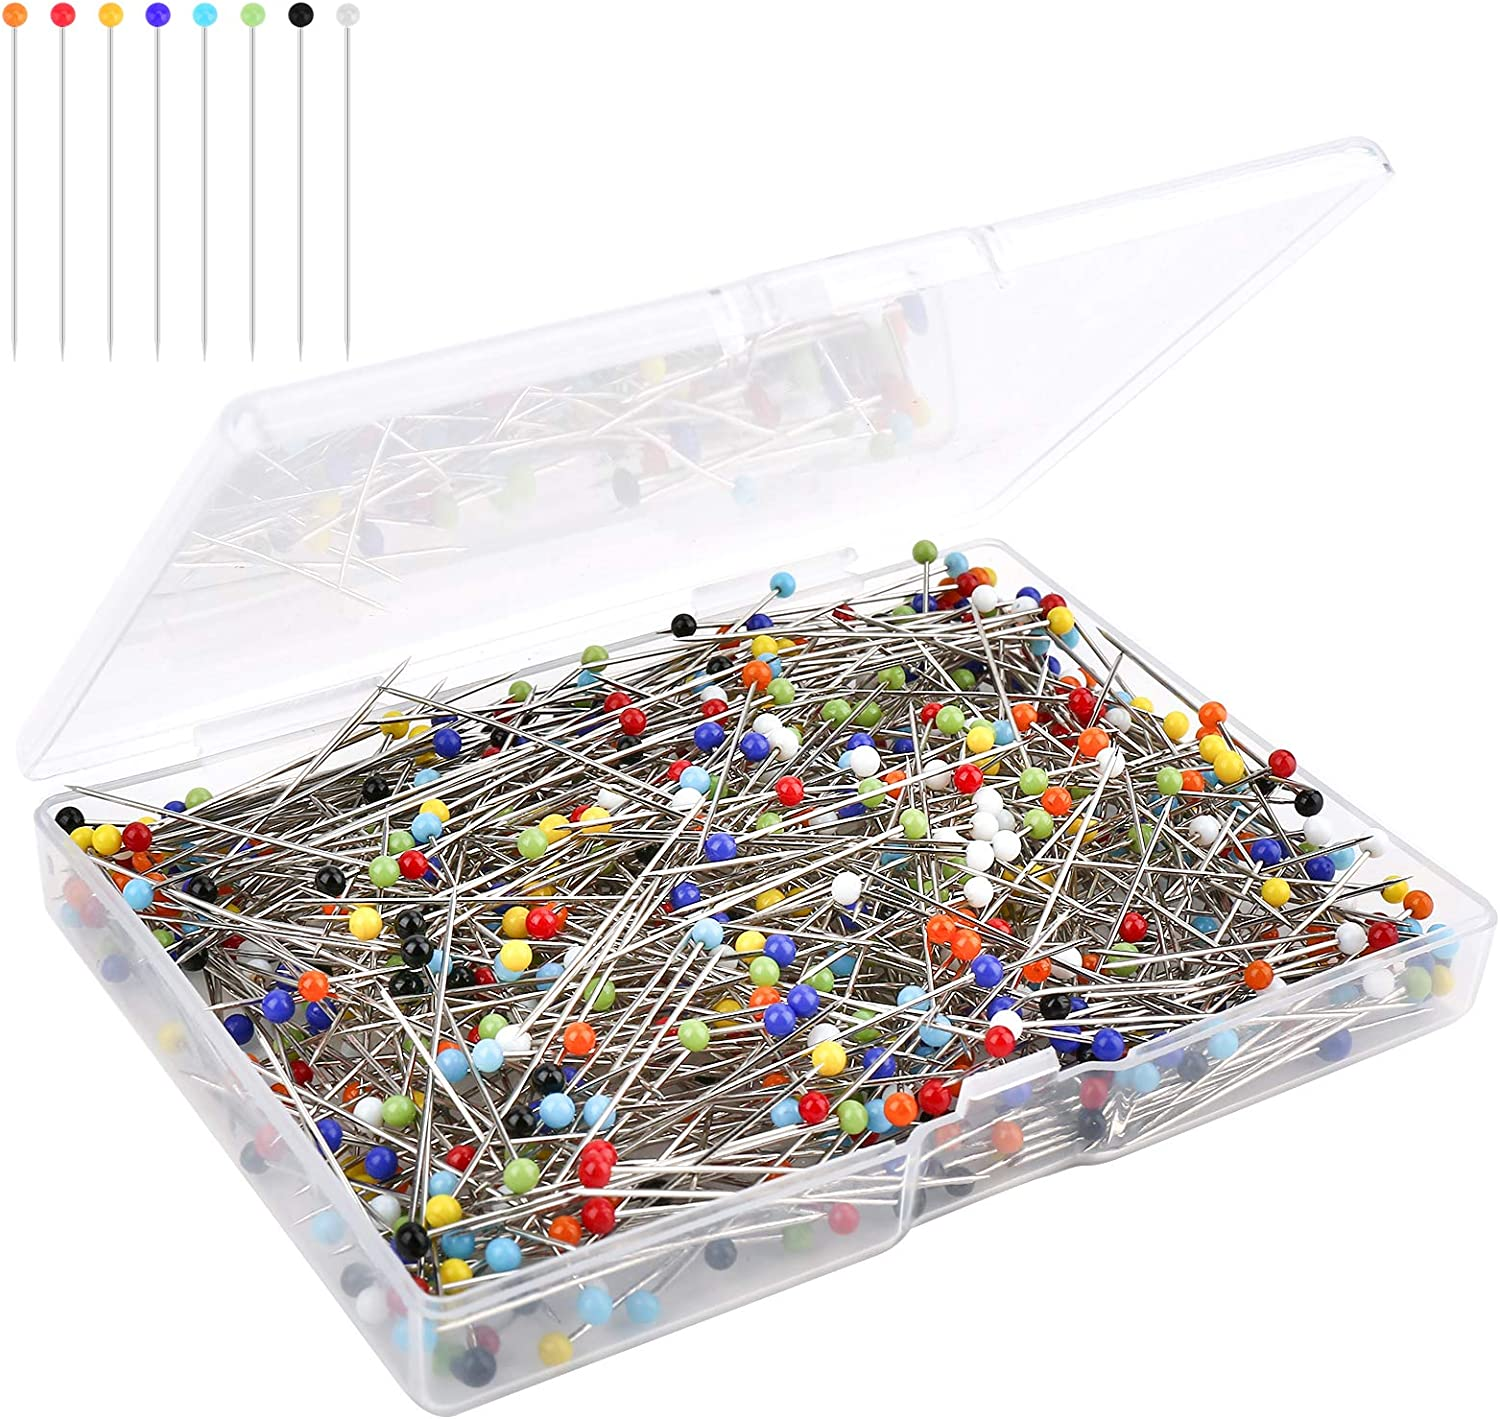 500pcs Sewing Pins, Straight Quilting Pins, Glass Head Pins, Premium Quality Stainless Steel Hijab Pin with Transparent Box for Fabric Dressmaker Jewelry Decoration, (8 Colors 1.5 Inch) Ylyl